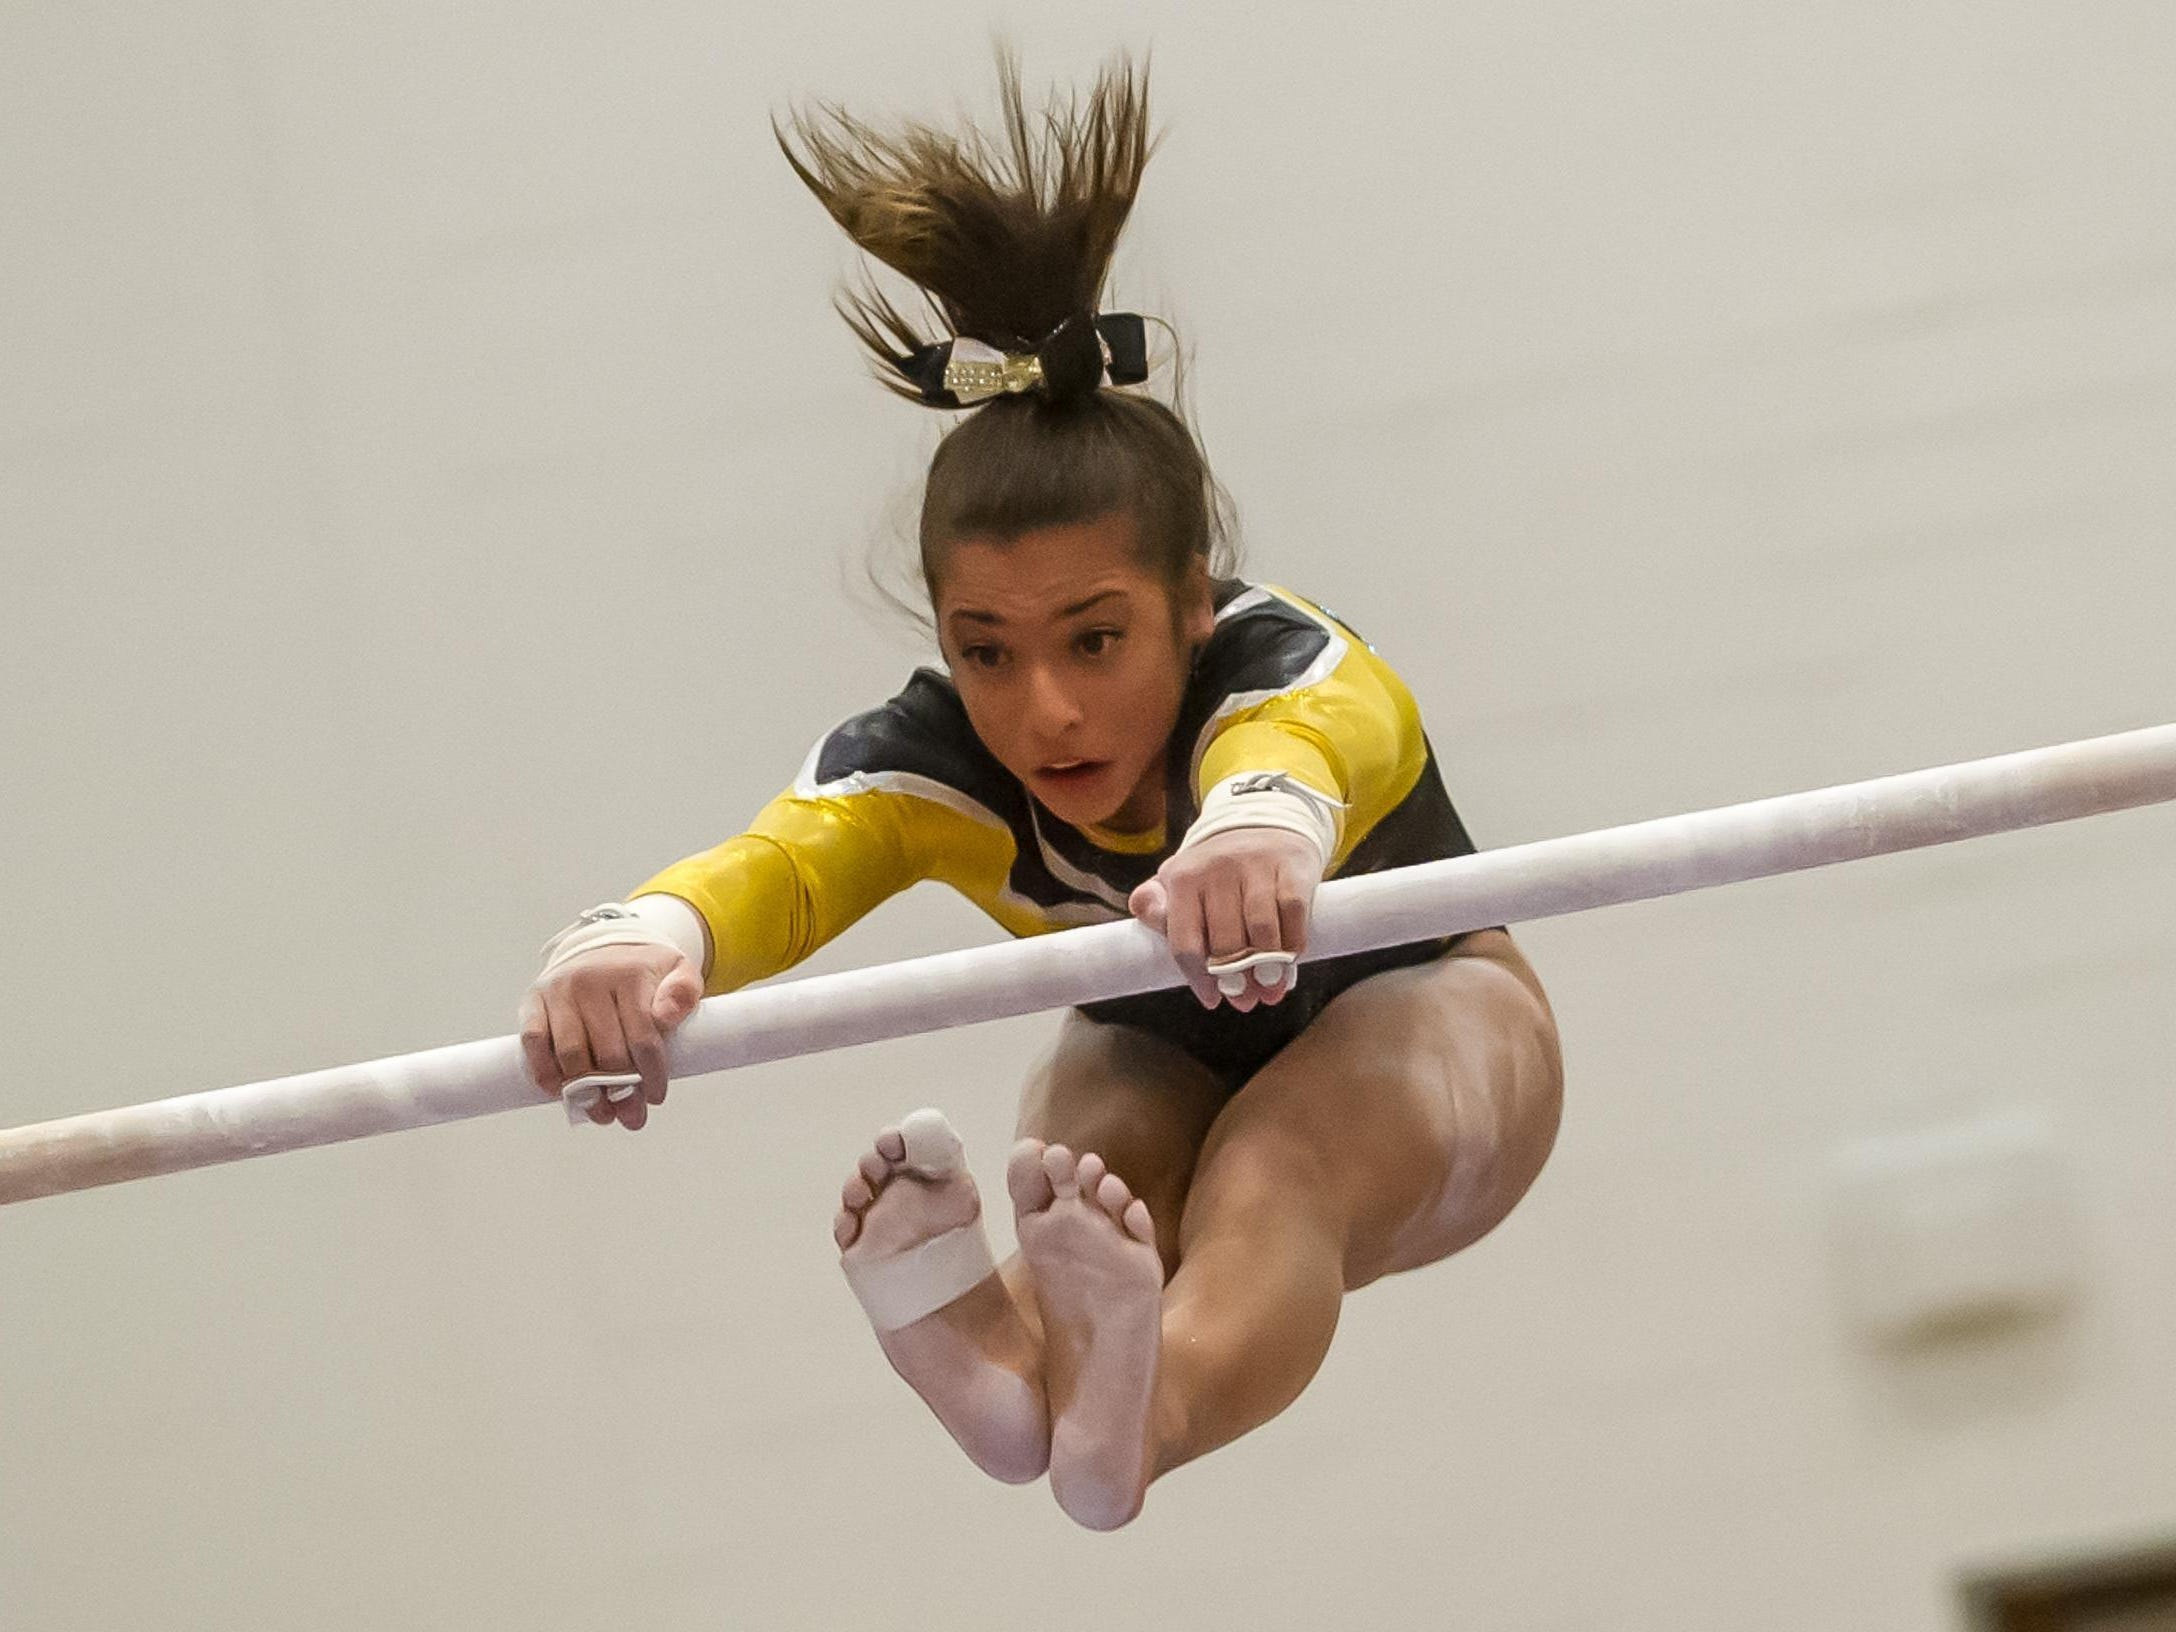 St. John Vianney's Arianna Agrapides competes on the bars in the NJSIAA Gymnastics state individual championship at Montgomery High School on Saturday Nov. 14, 2015. Photo by Jeff Granit